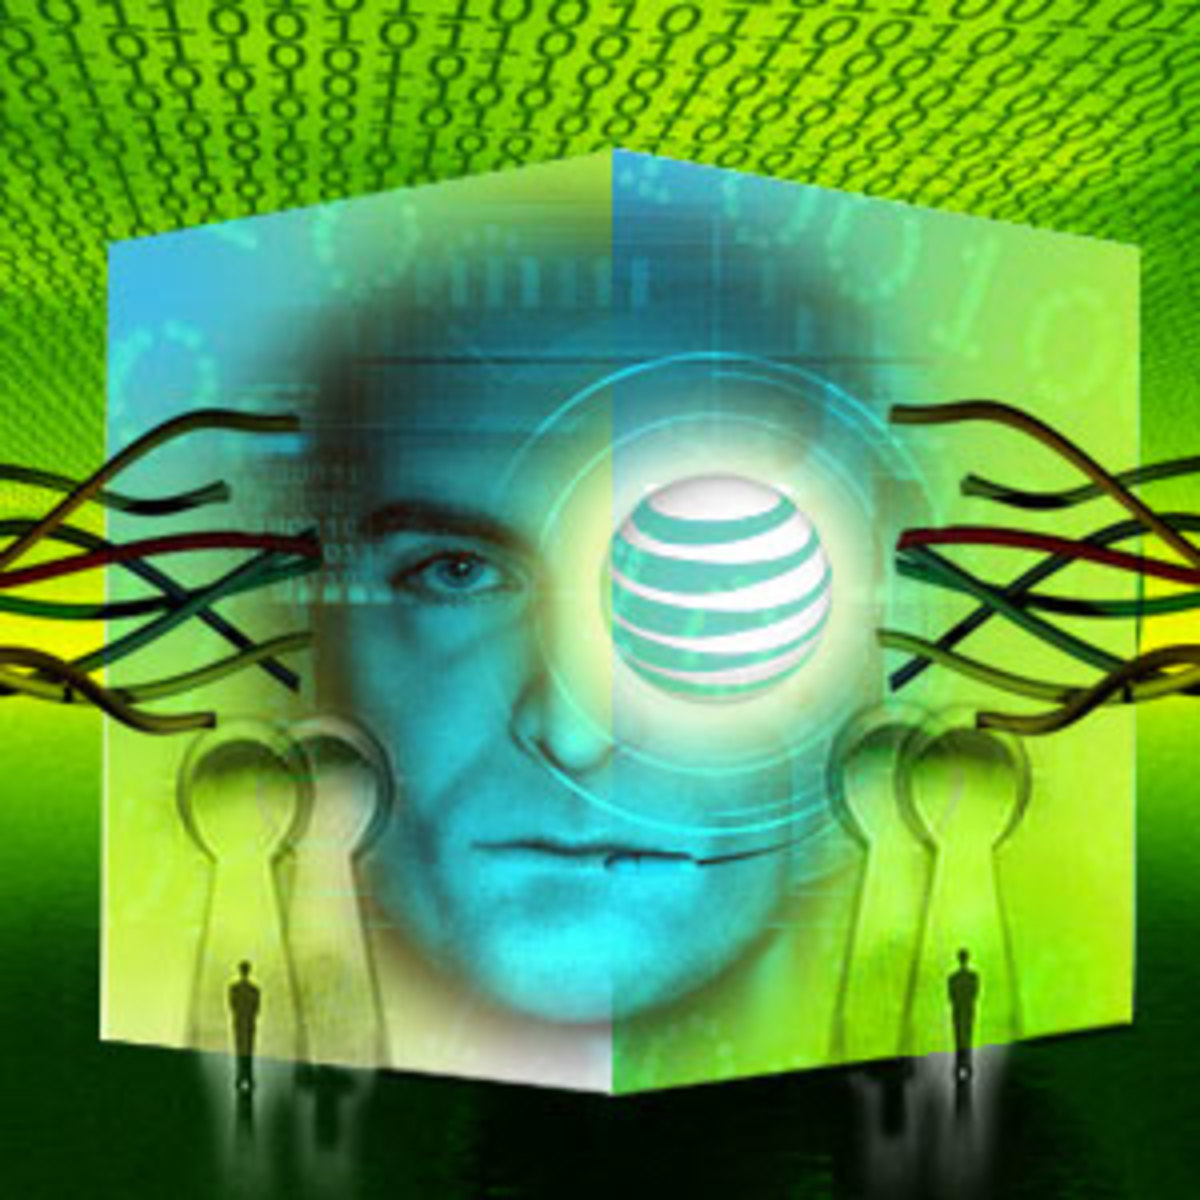 remote-neural-monitoring--a-technology-used-for-controlling-human-brain